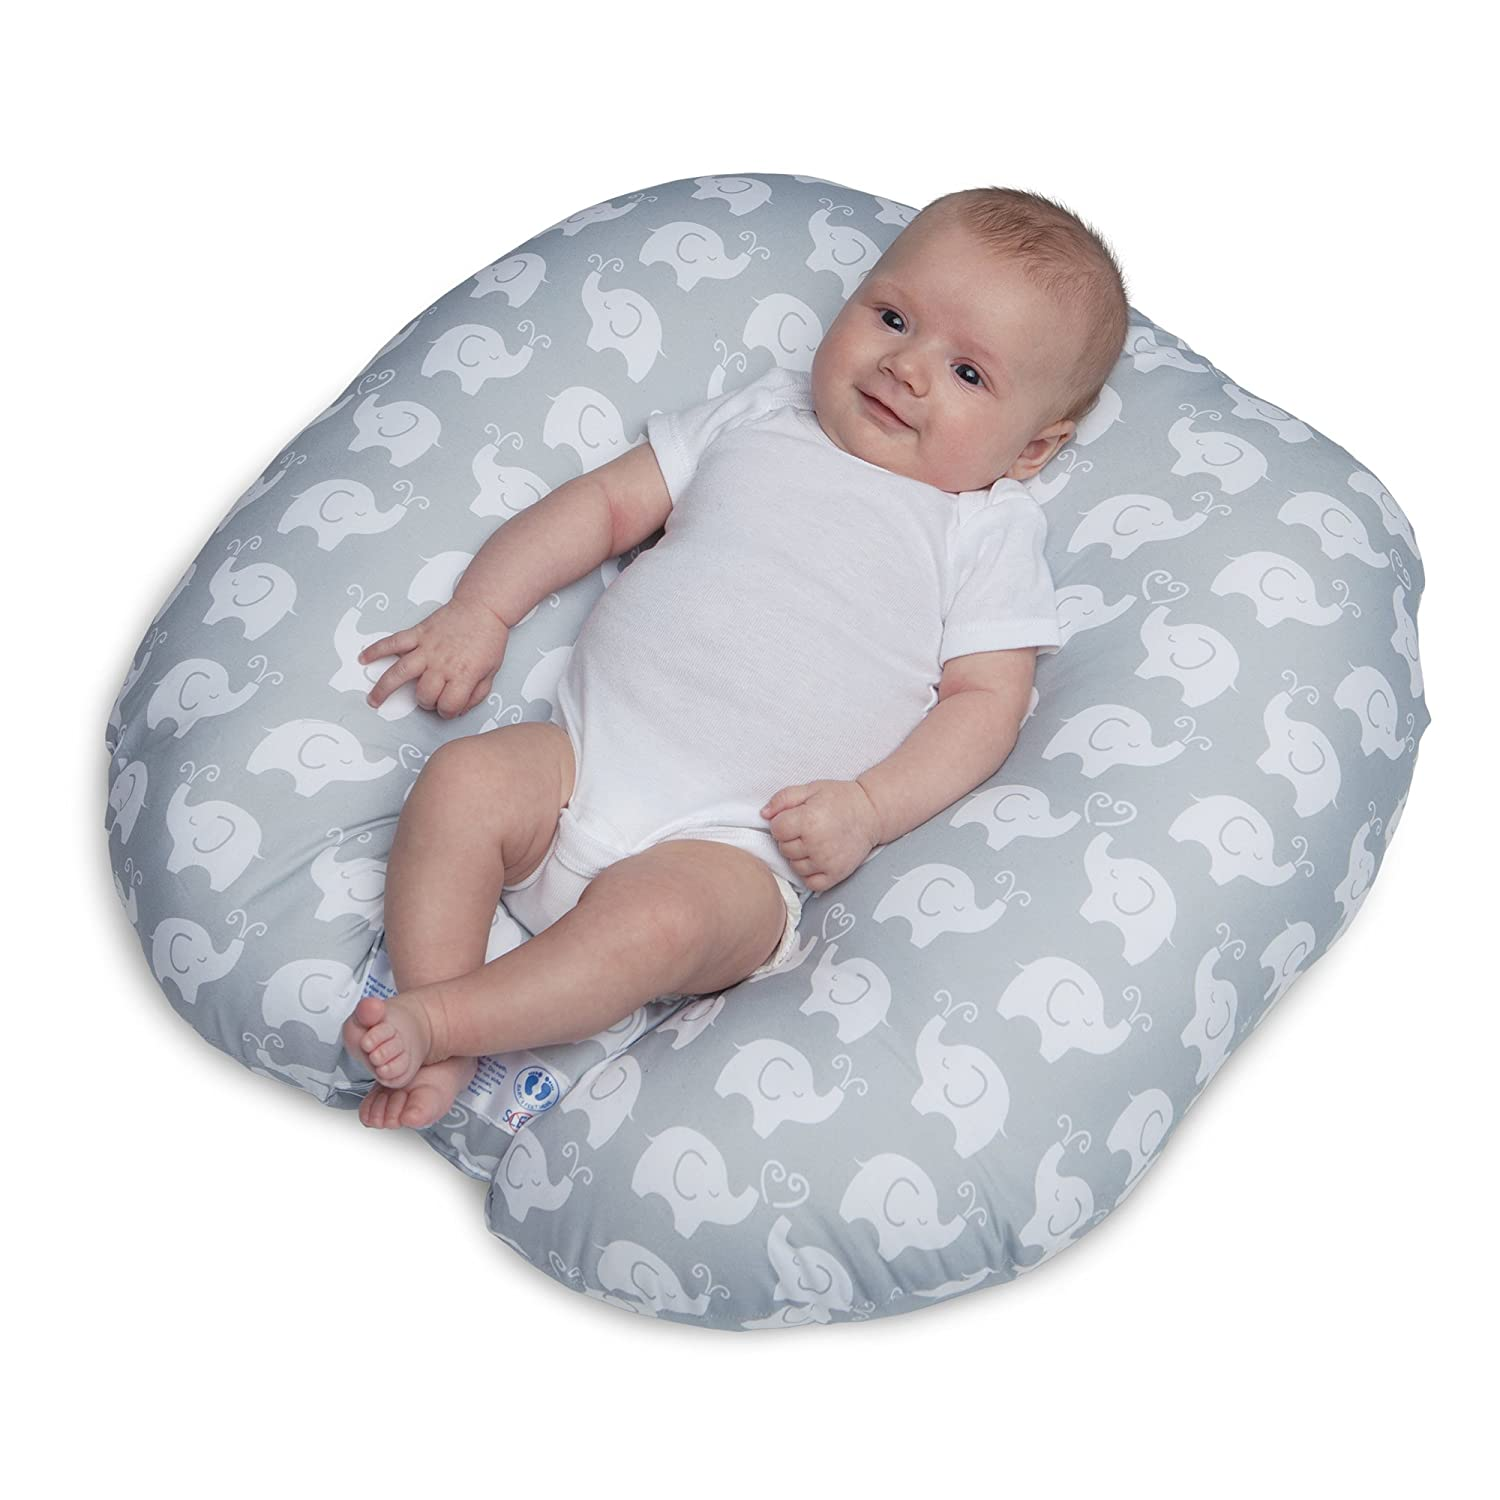 Boppy Newborn Lounger, Elephant Love Gray 4300116K 2PK